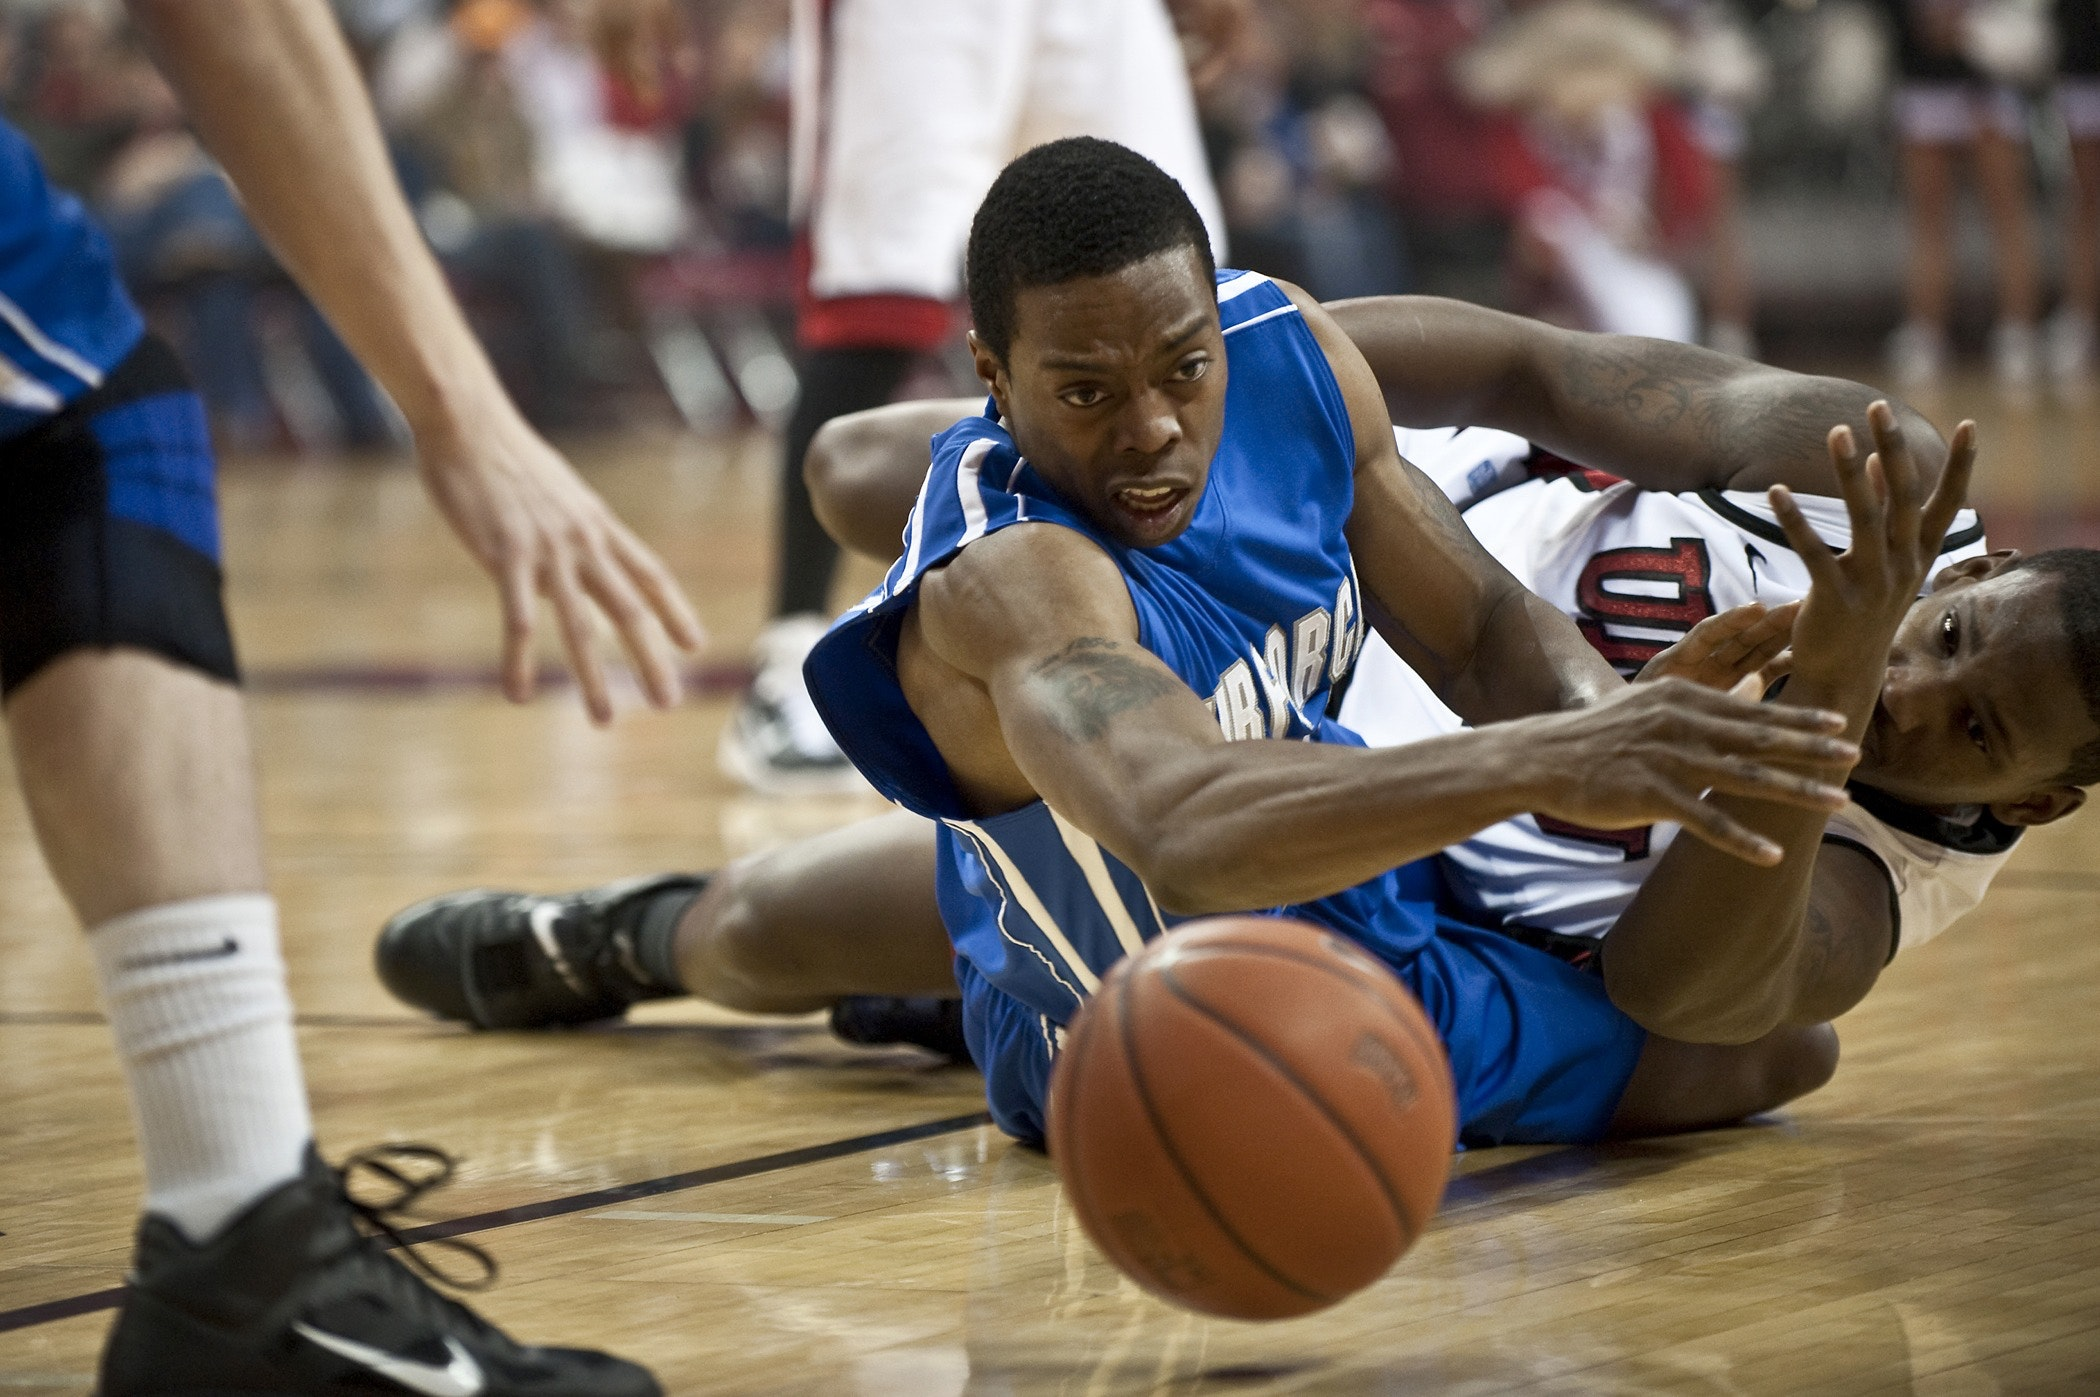 4 Characteristics of Mentally Tough Players